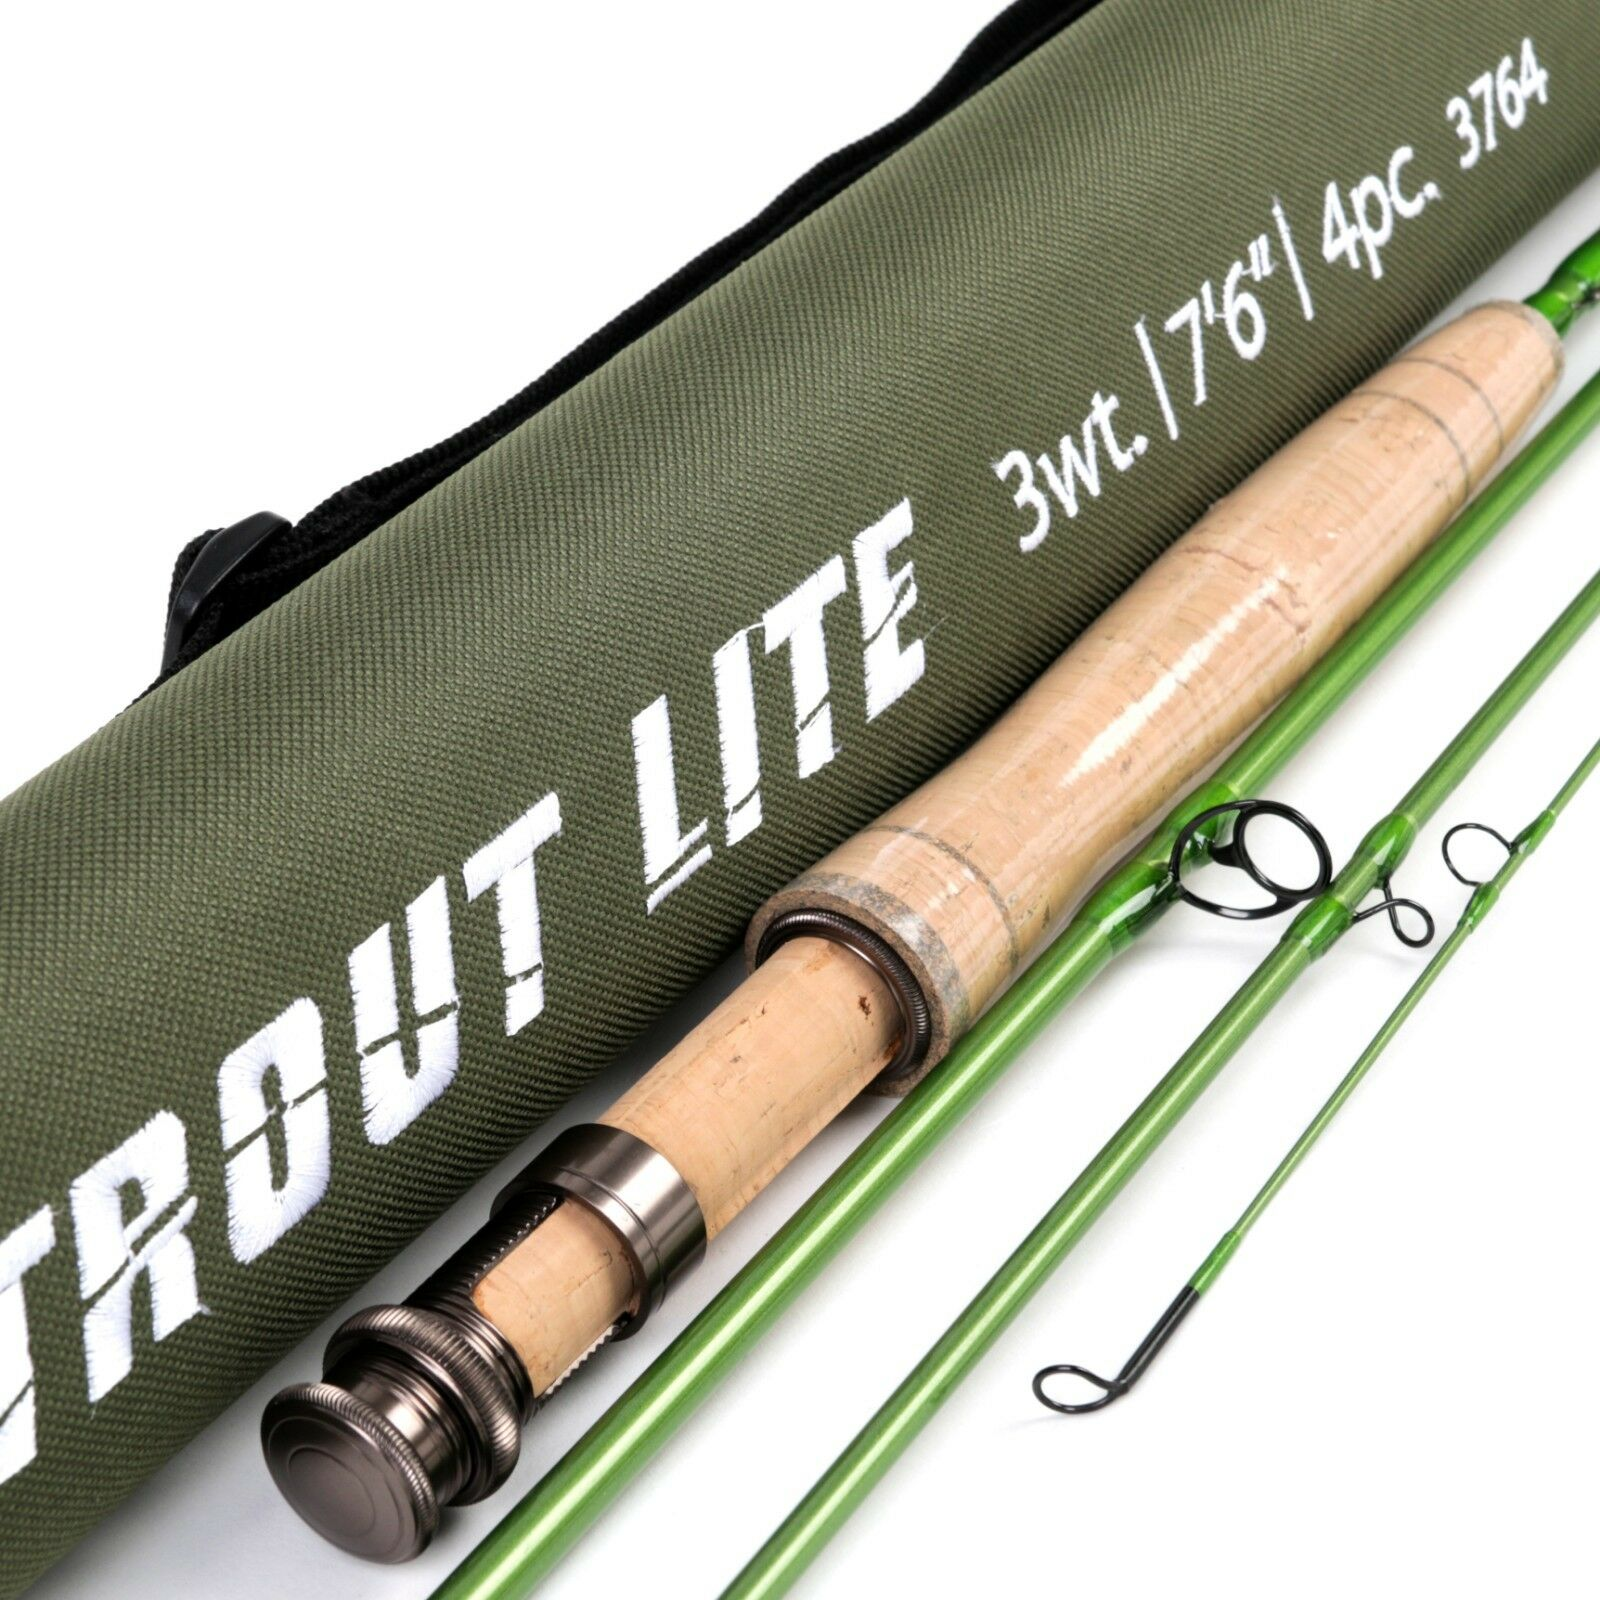 Trout Lite Fly Fishing Rod trout fishing rod IM12 Graphite 4pcs Moderate azione